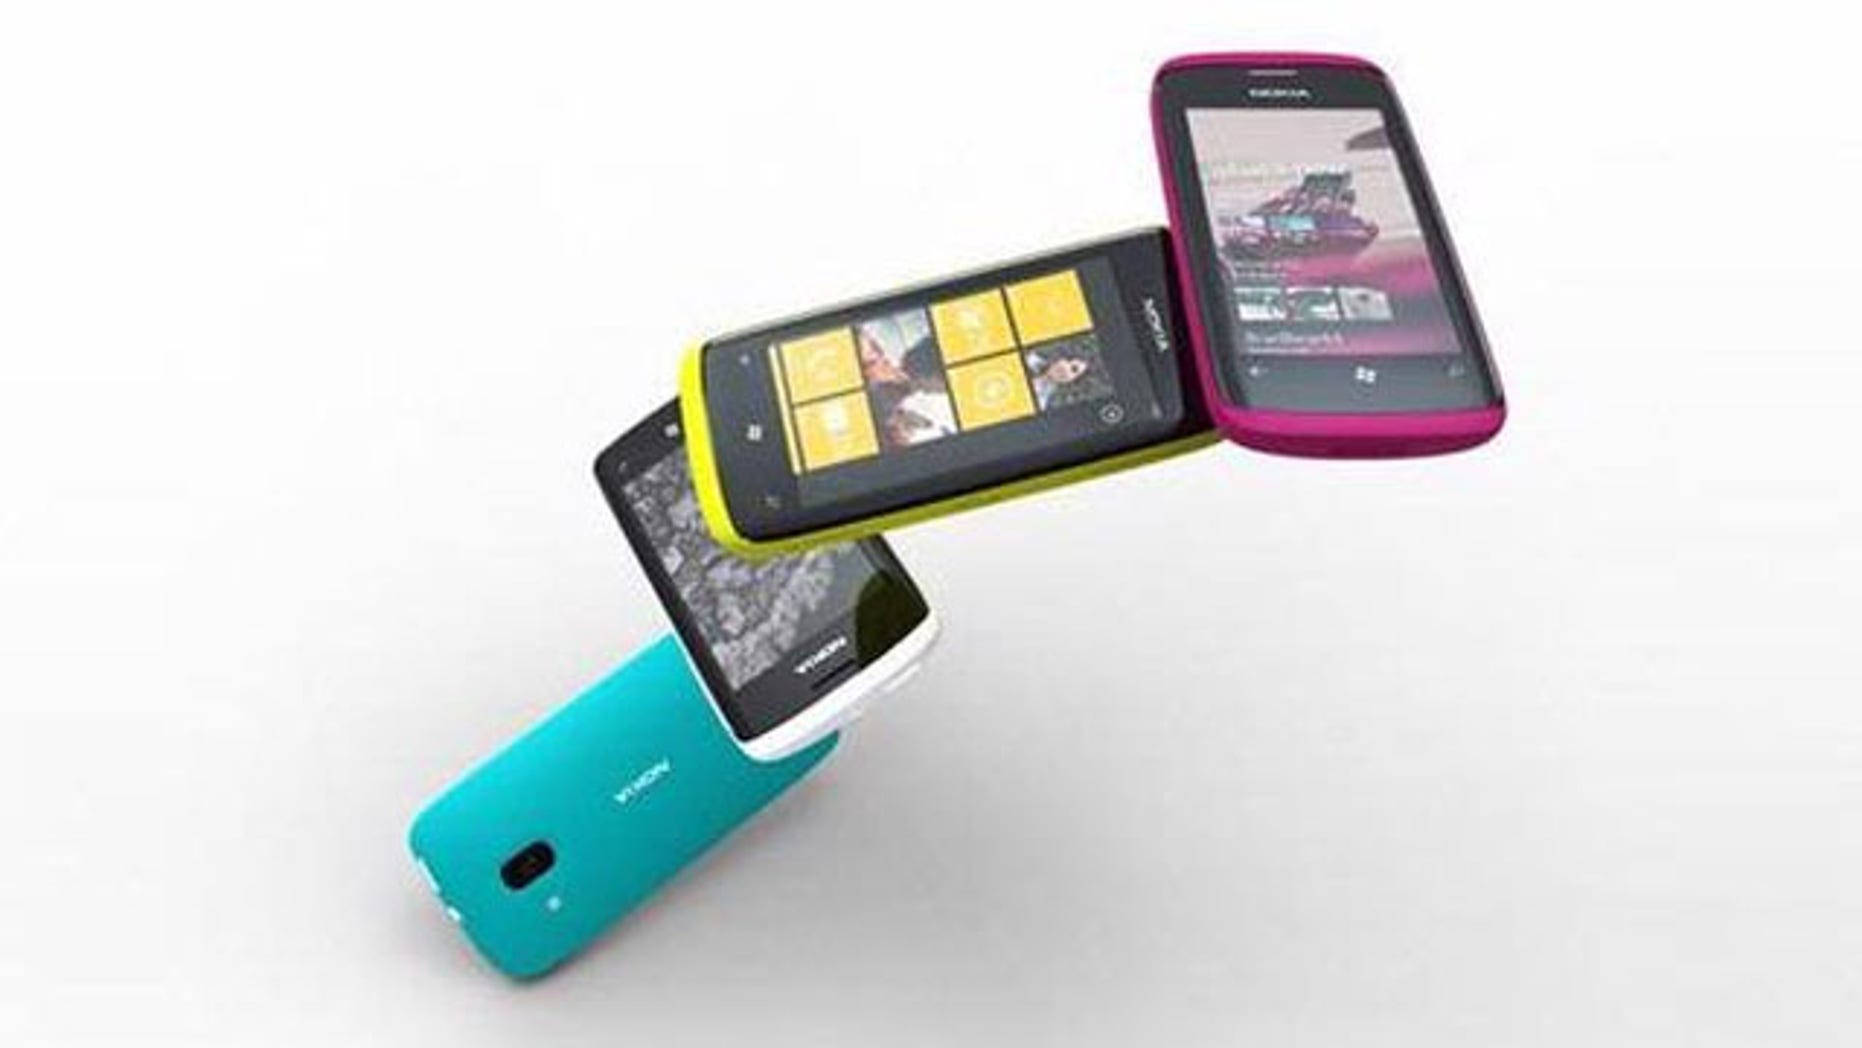 Nokia has a slew of Windows based phones in the works.